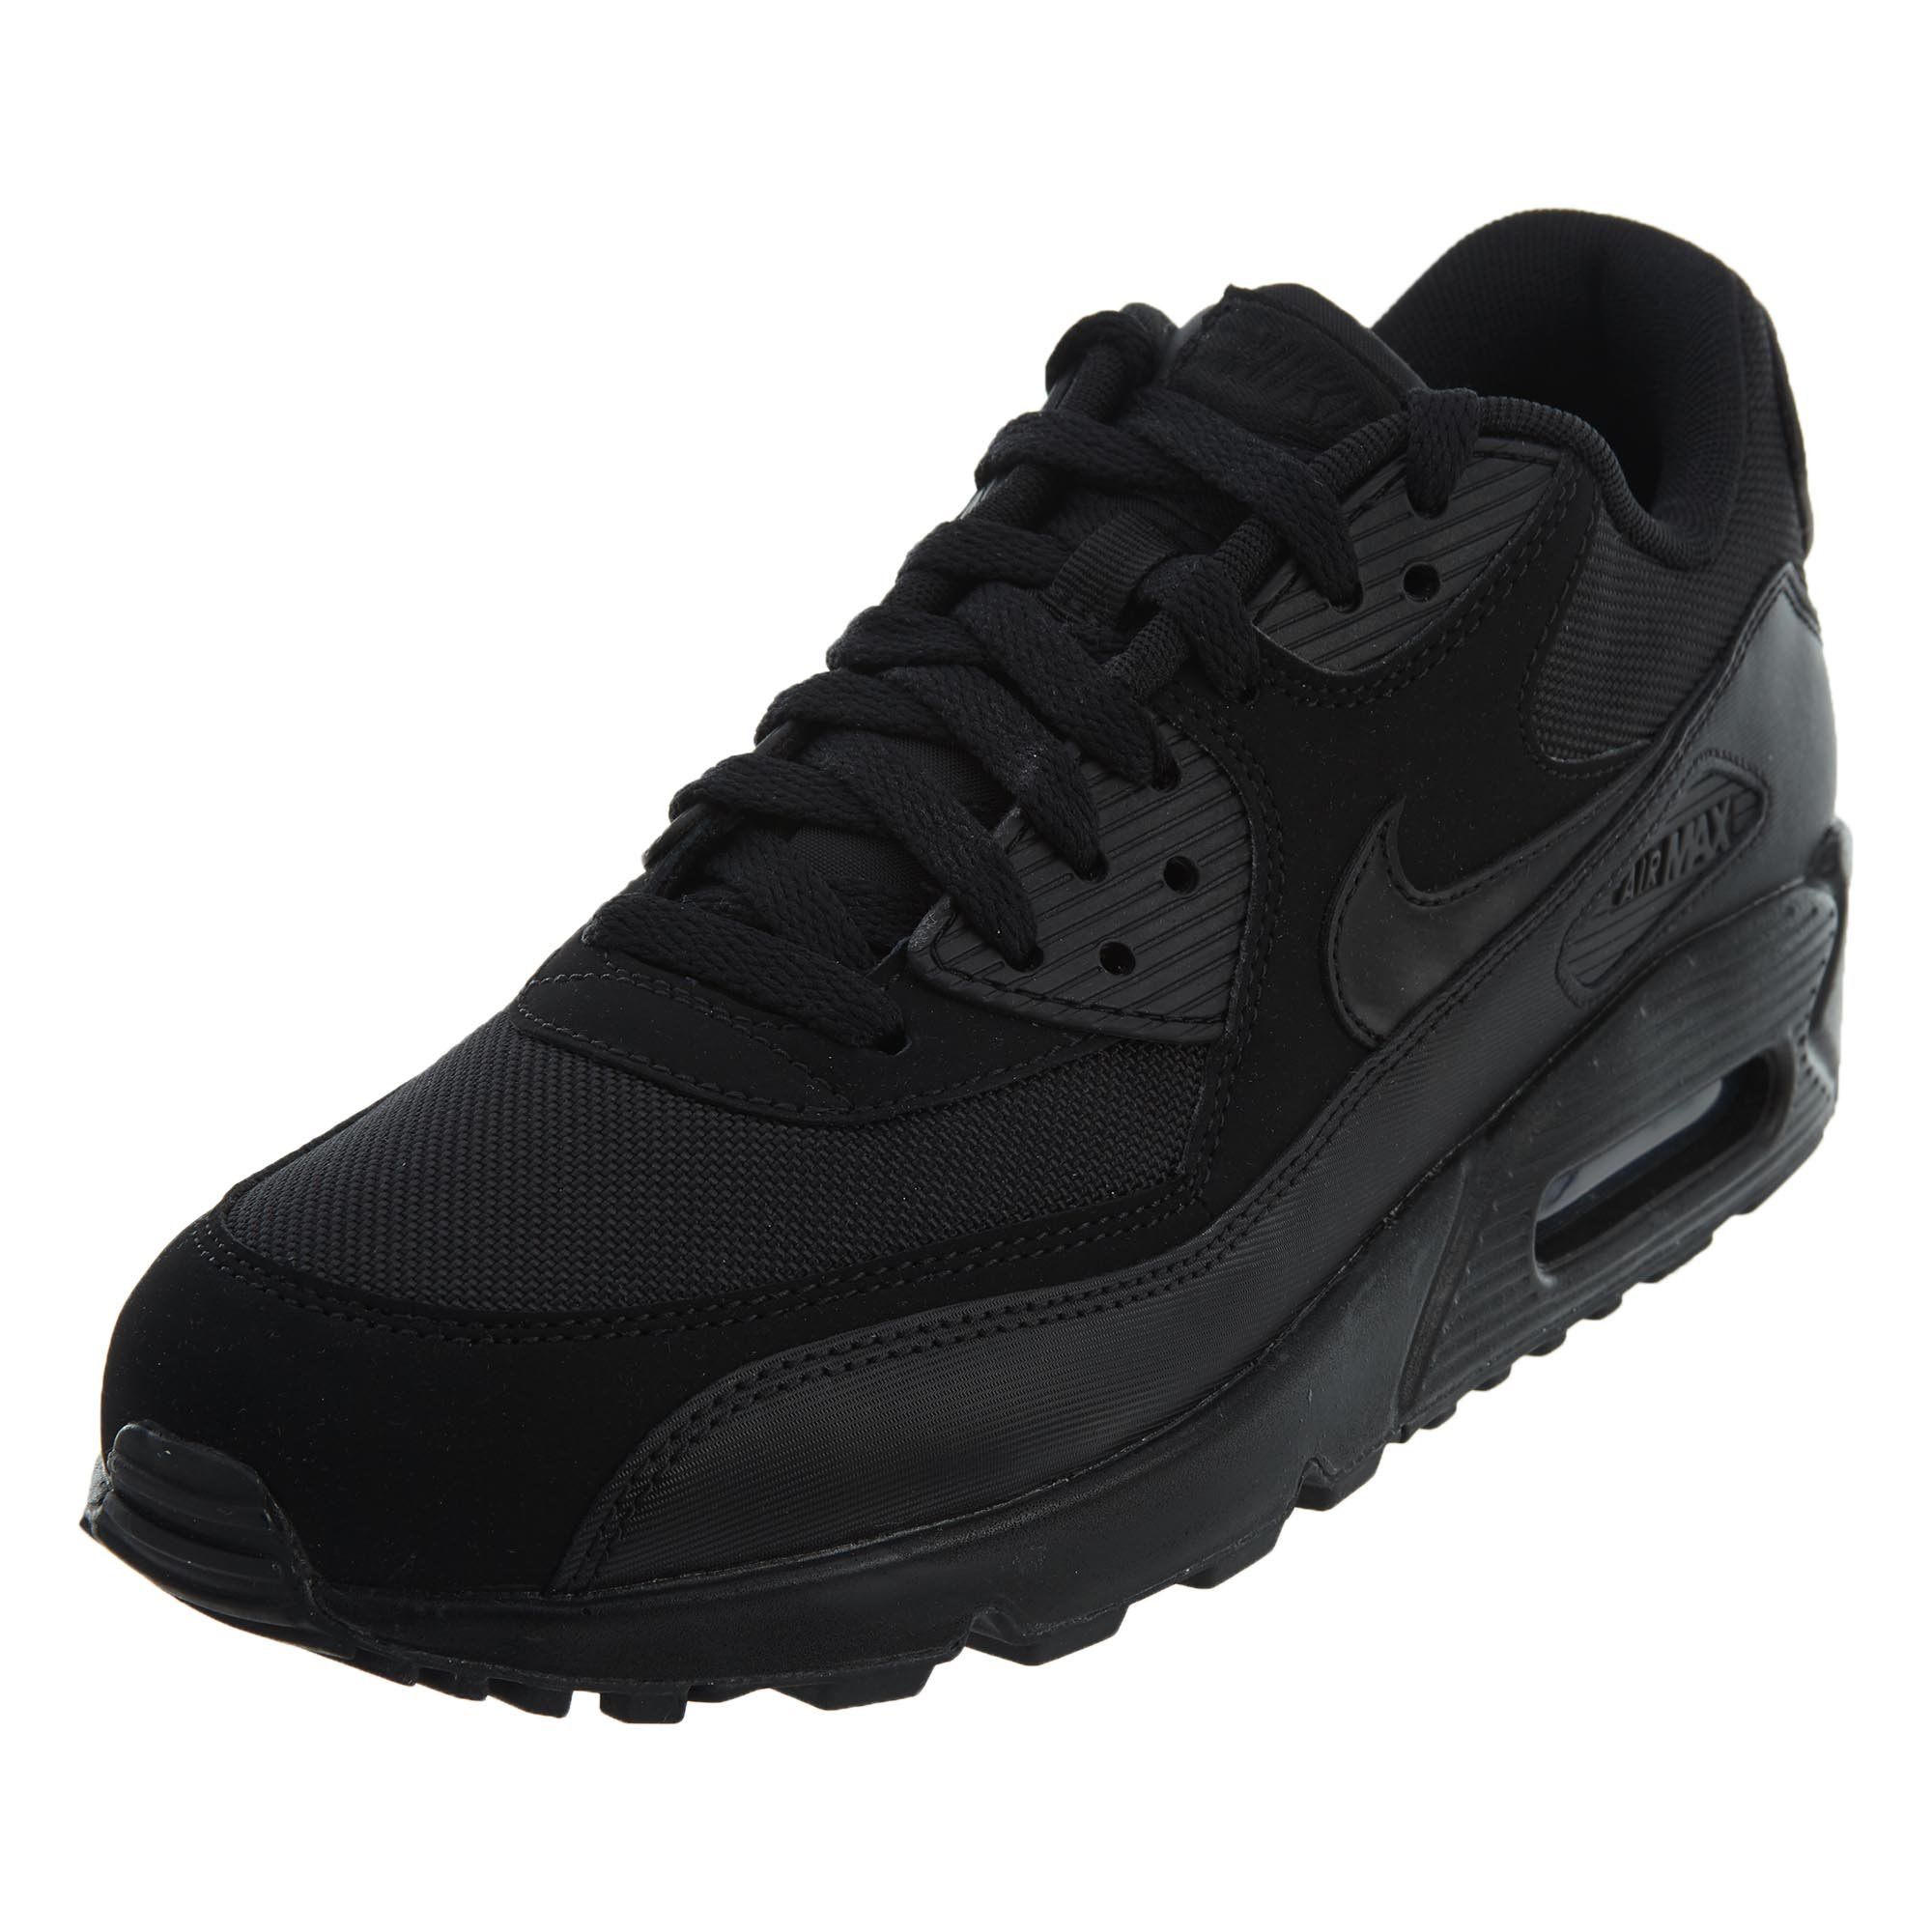 promo code 06718 84a7f Nike Men's Air Max 90 Essential Running Shoes, Black/Black, 7 M US